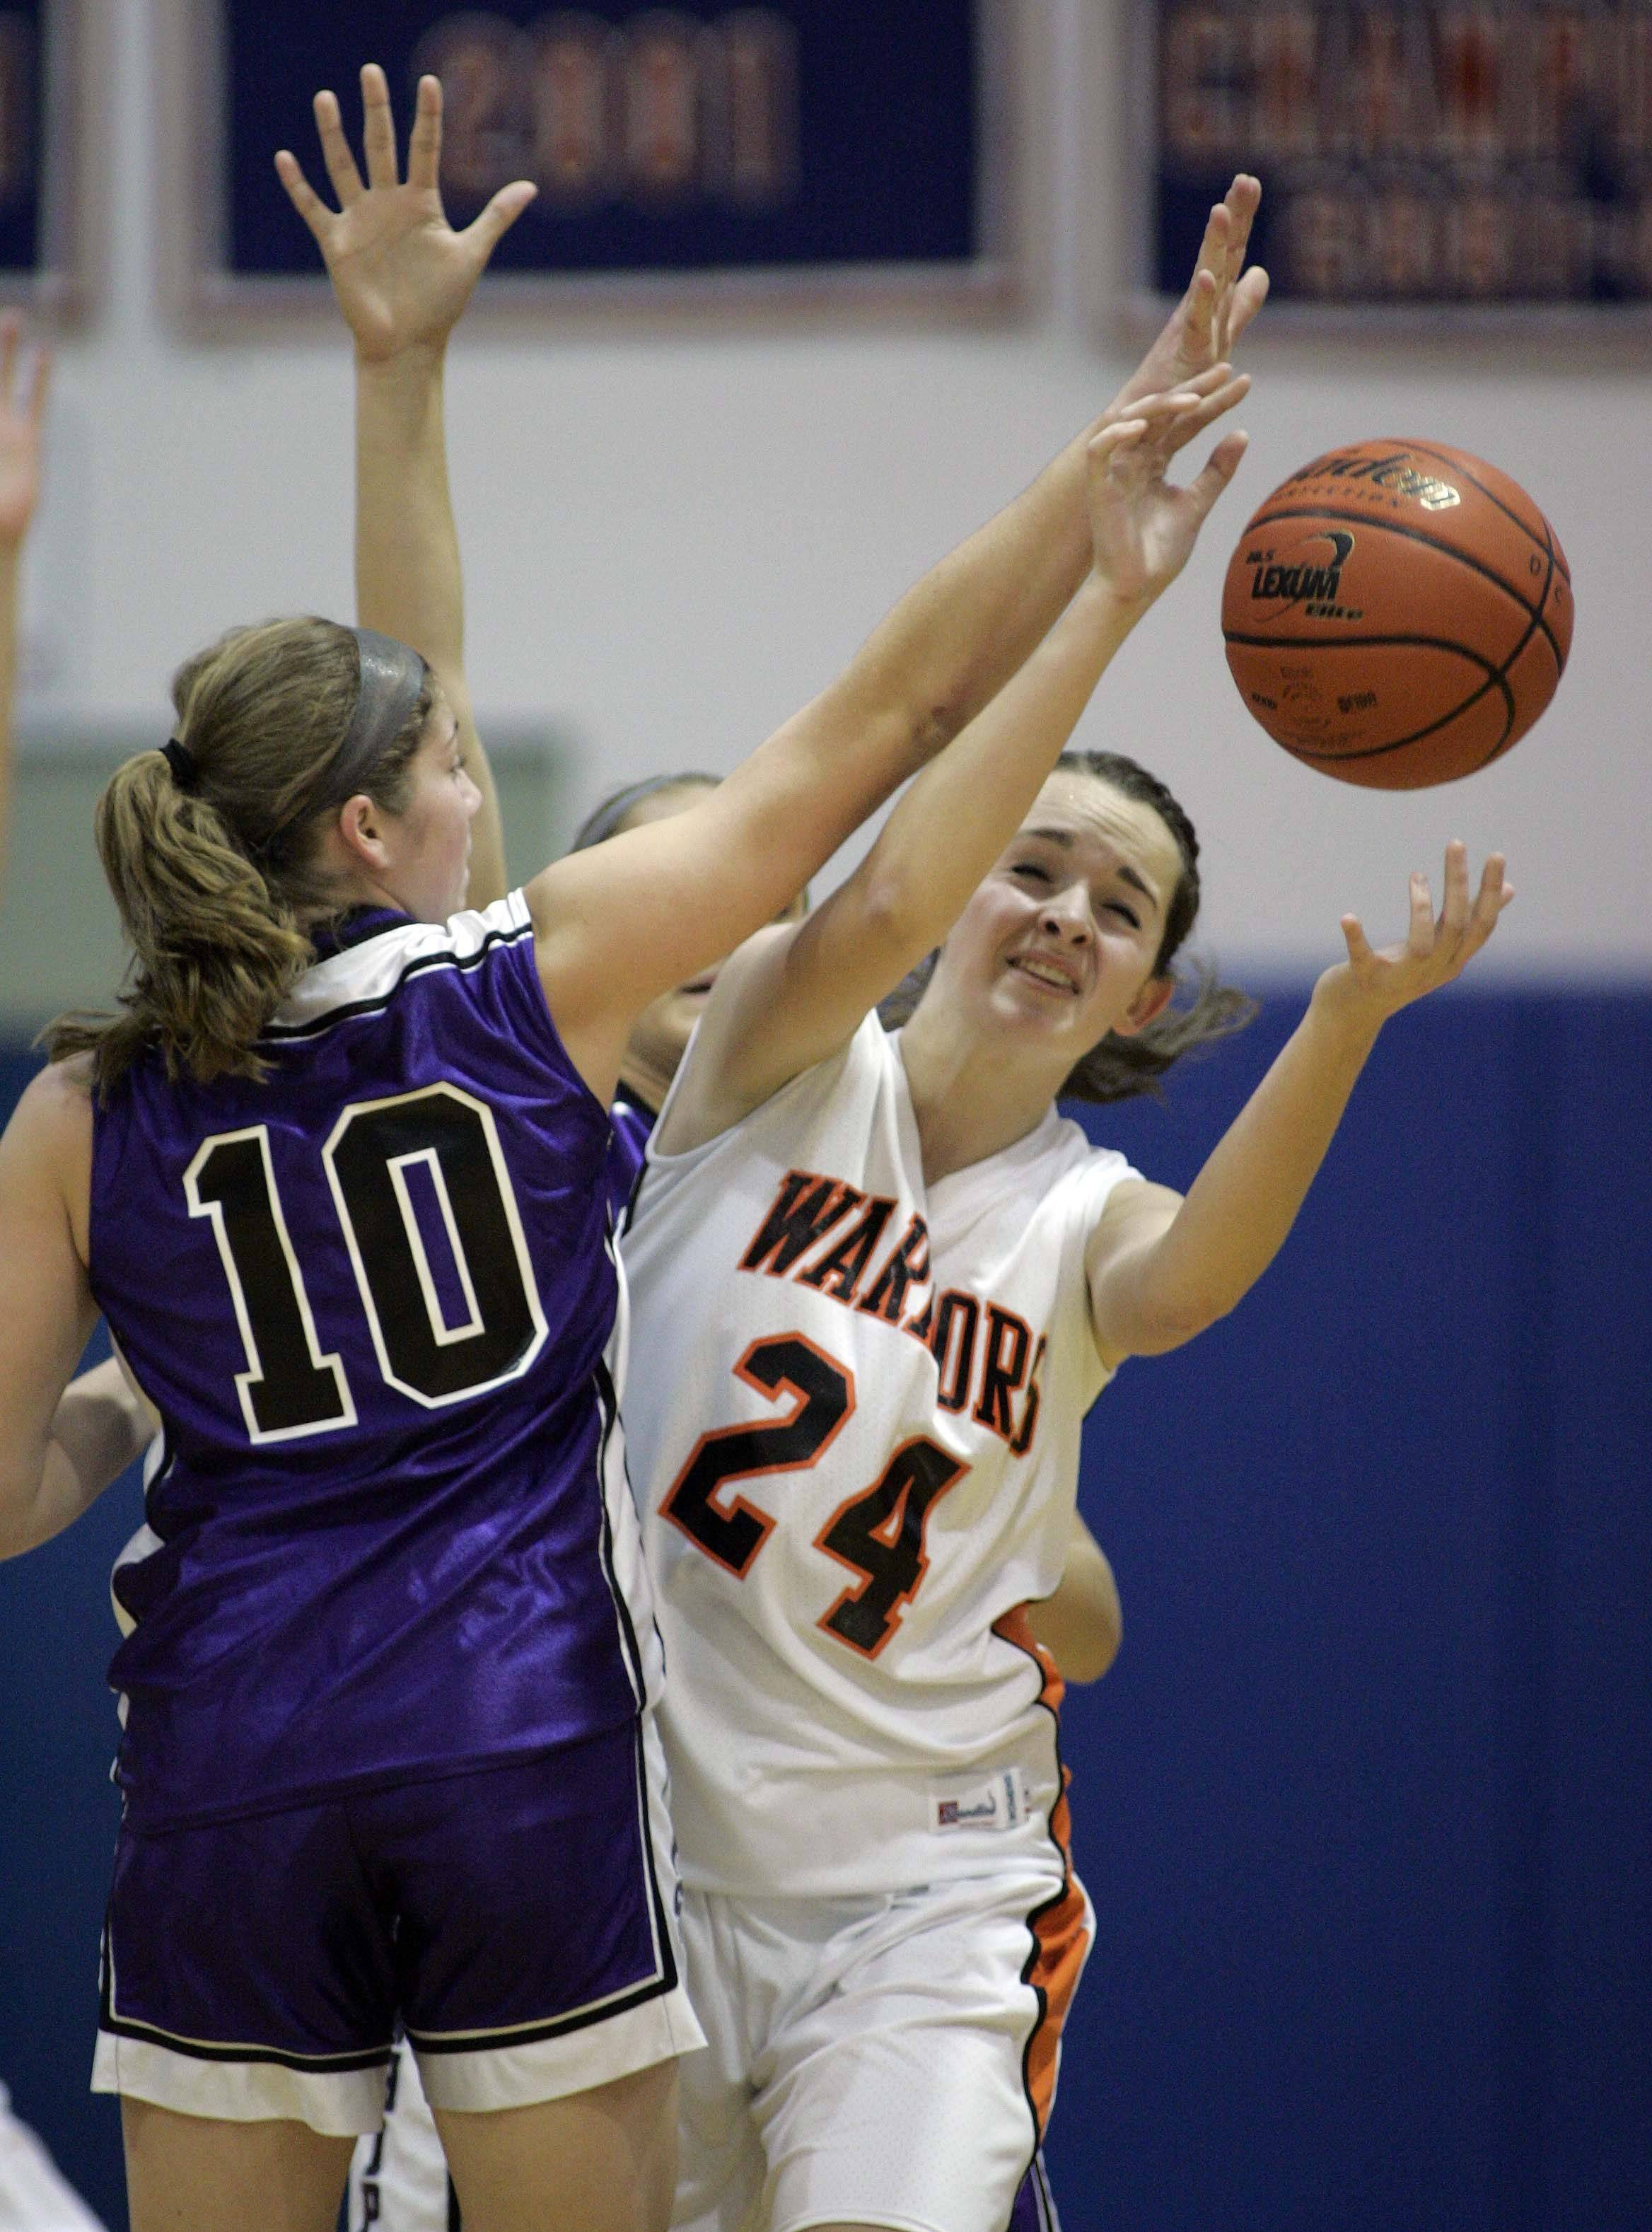 Hampshire's Jennifer Dumoulin (10) puts the pressure on McHenry center Katie Hennelly (24) during Hampshire vs McHenry girls basketball at the Dundee-Crown tournament Saturday, November 19, 2011 in Carpentersville.